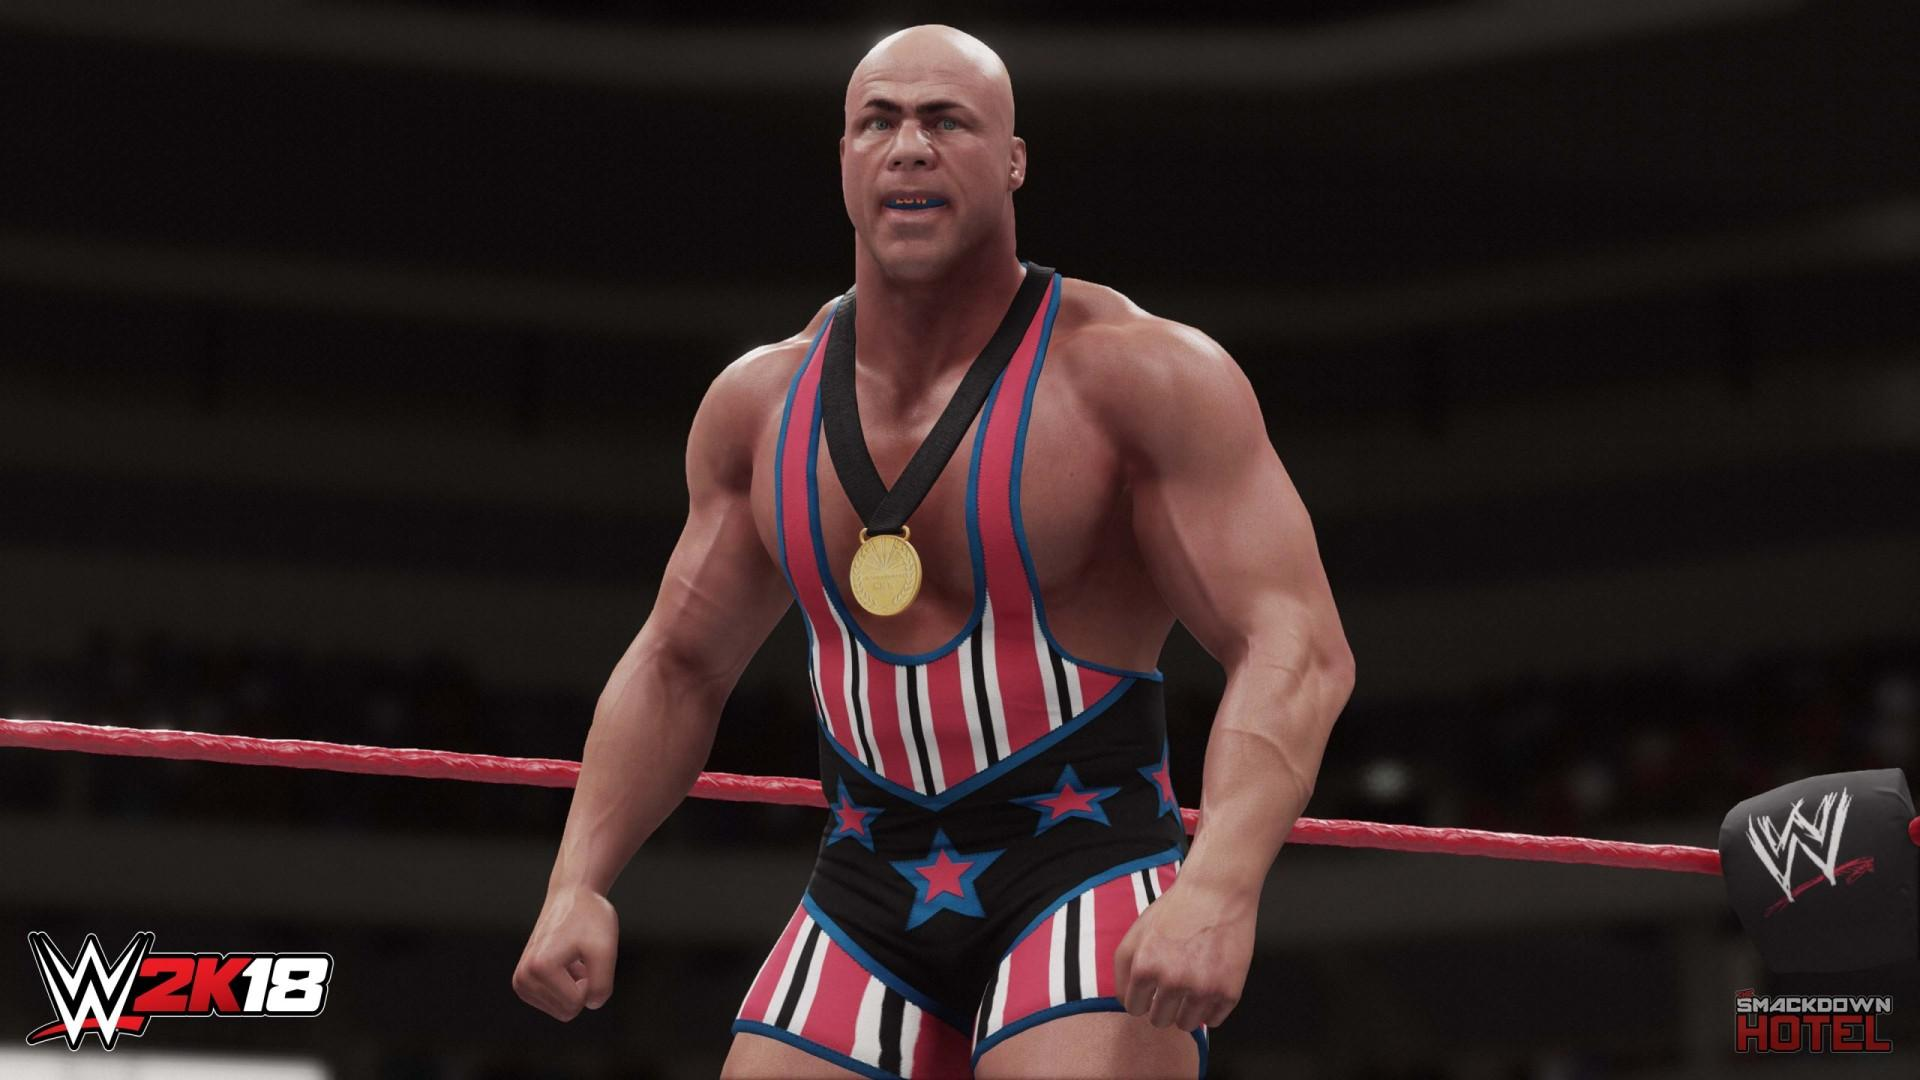 wwe 2k18 roster reveal week 2 with screenshots bobby